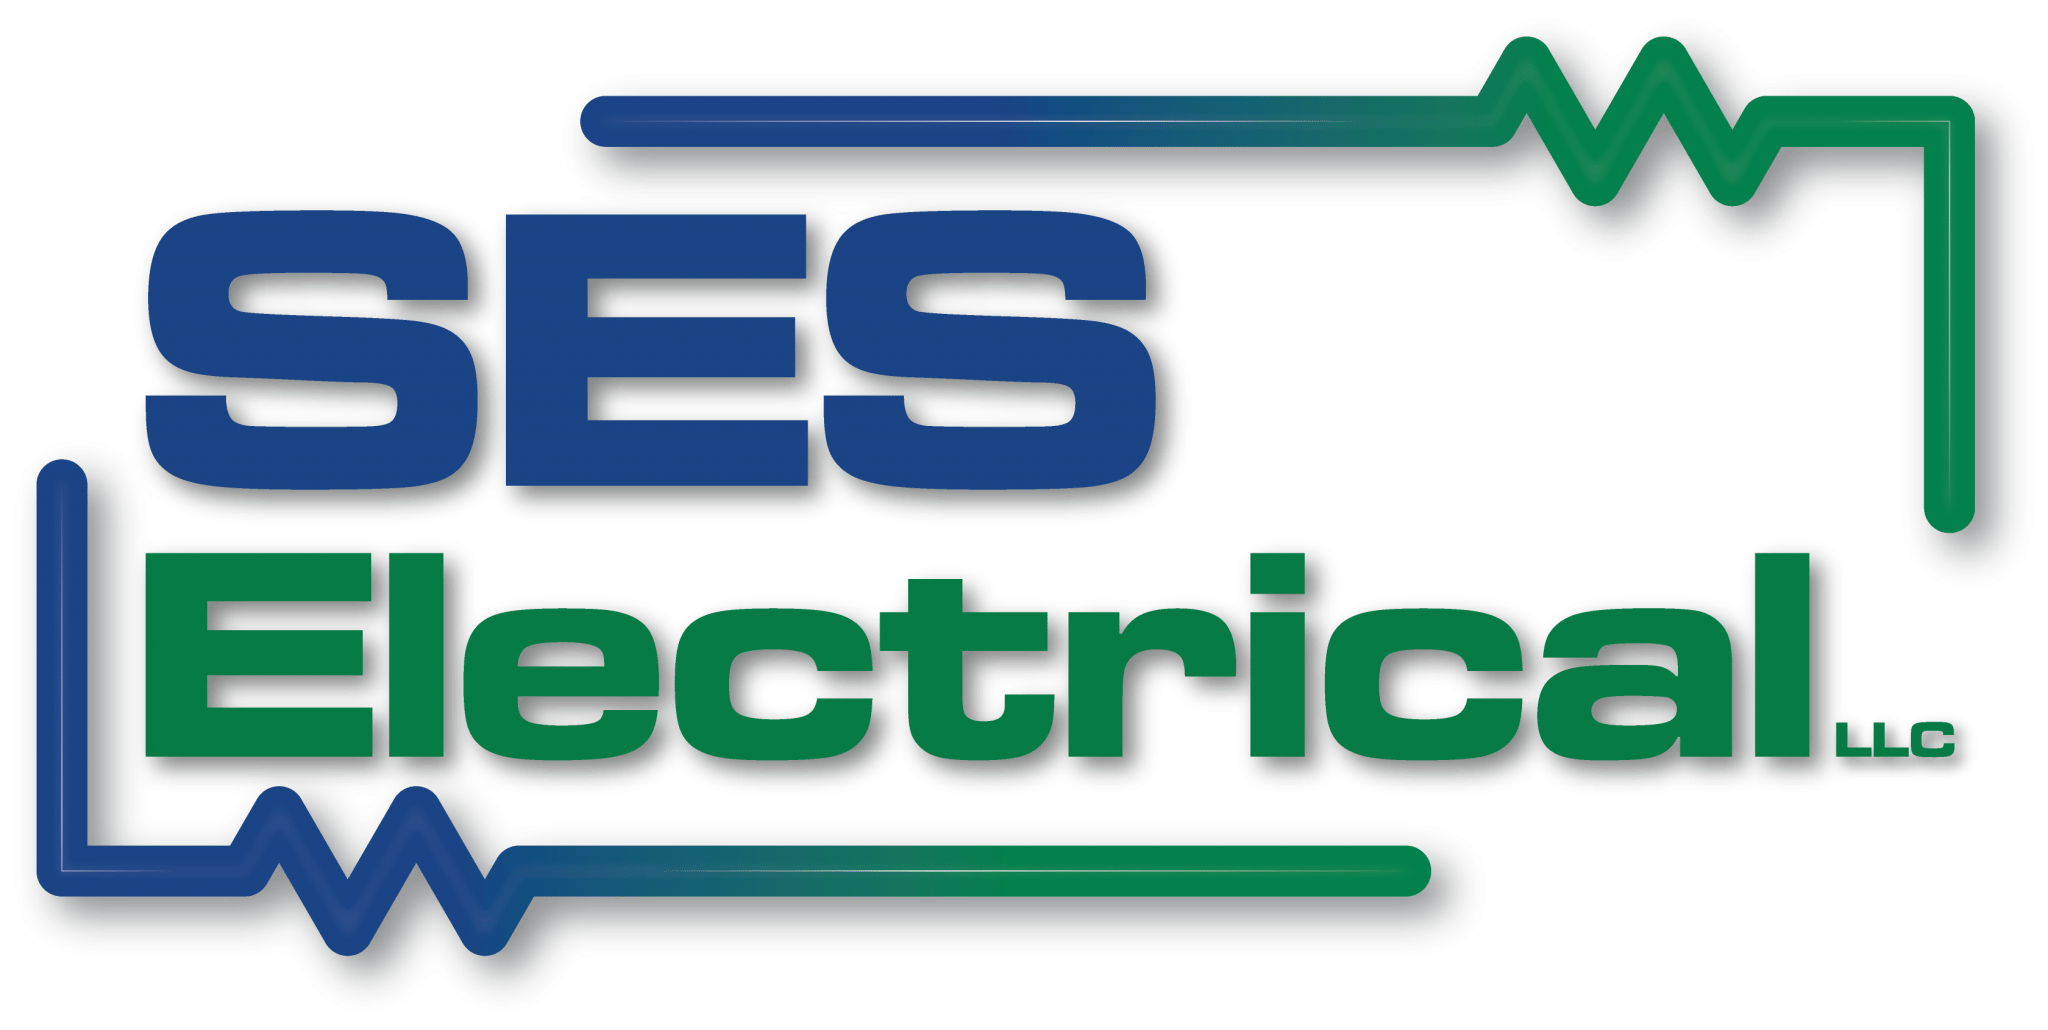 SES Electrical LLC